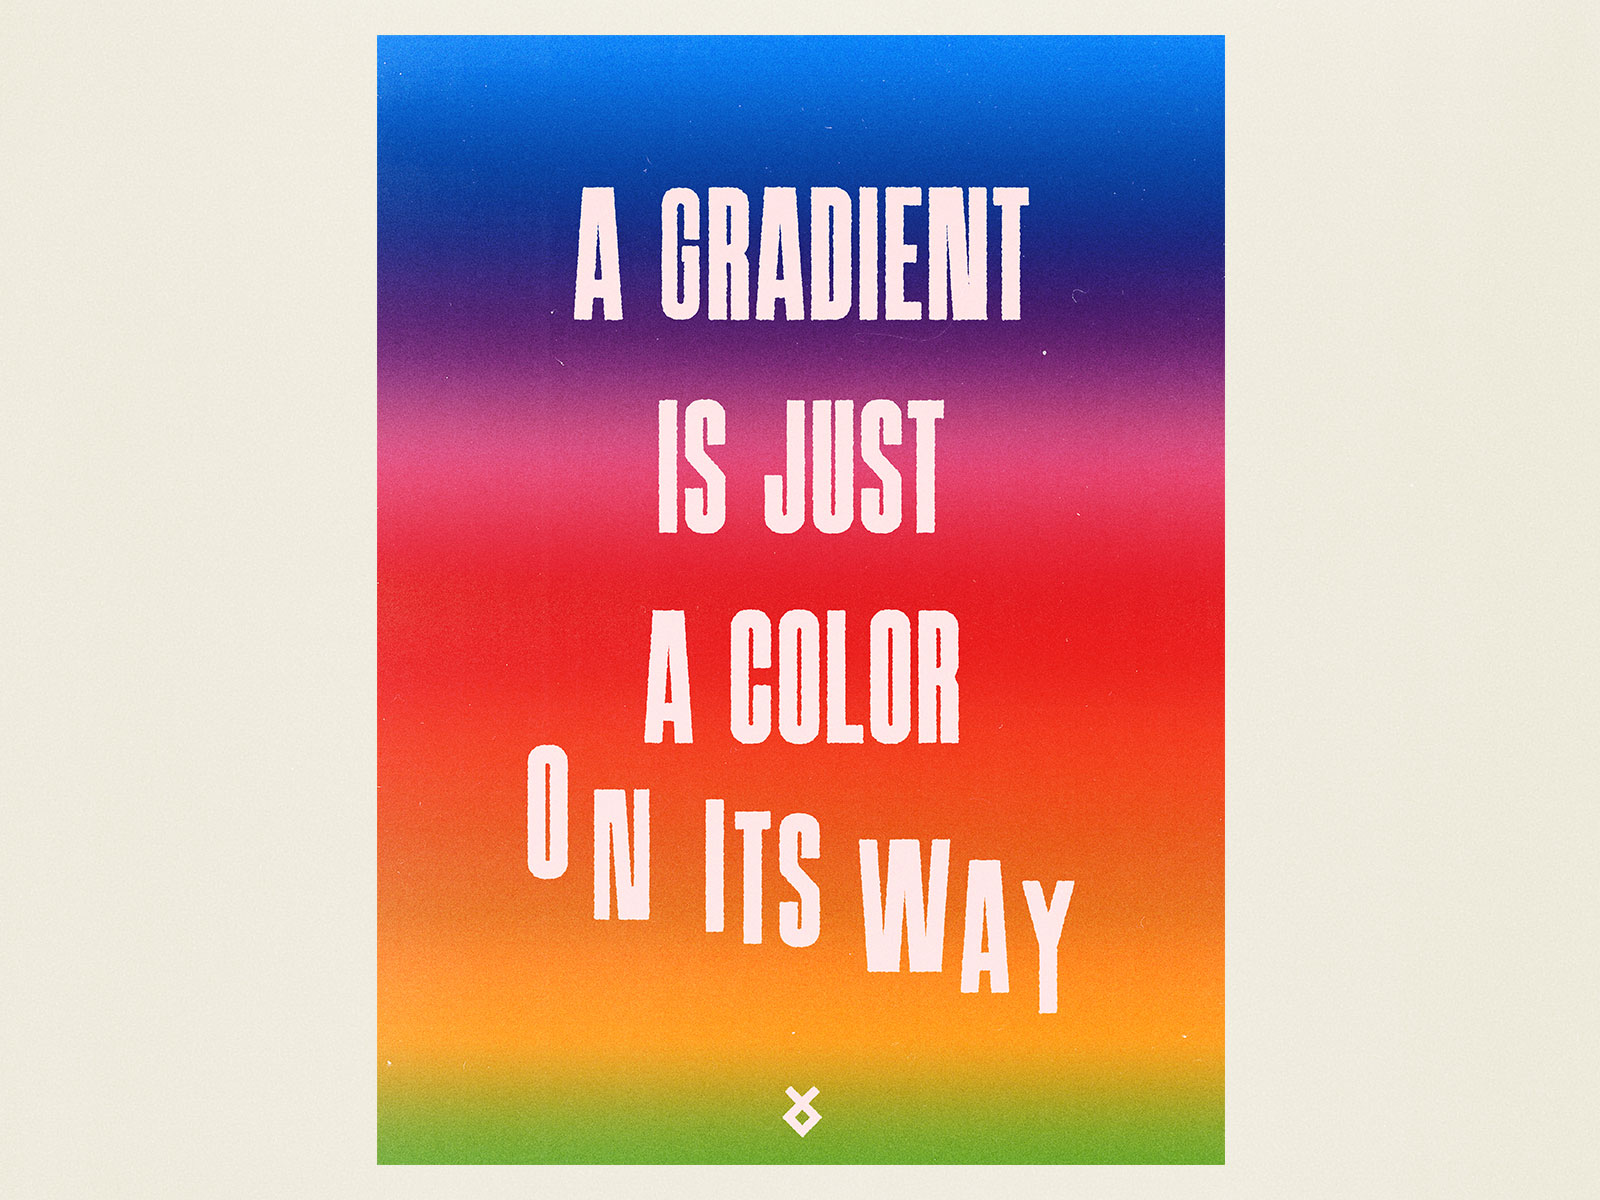 A Gradient is just a color on it's way